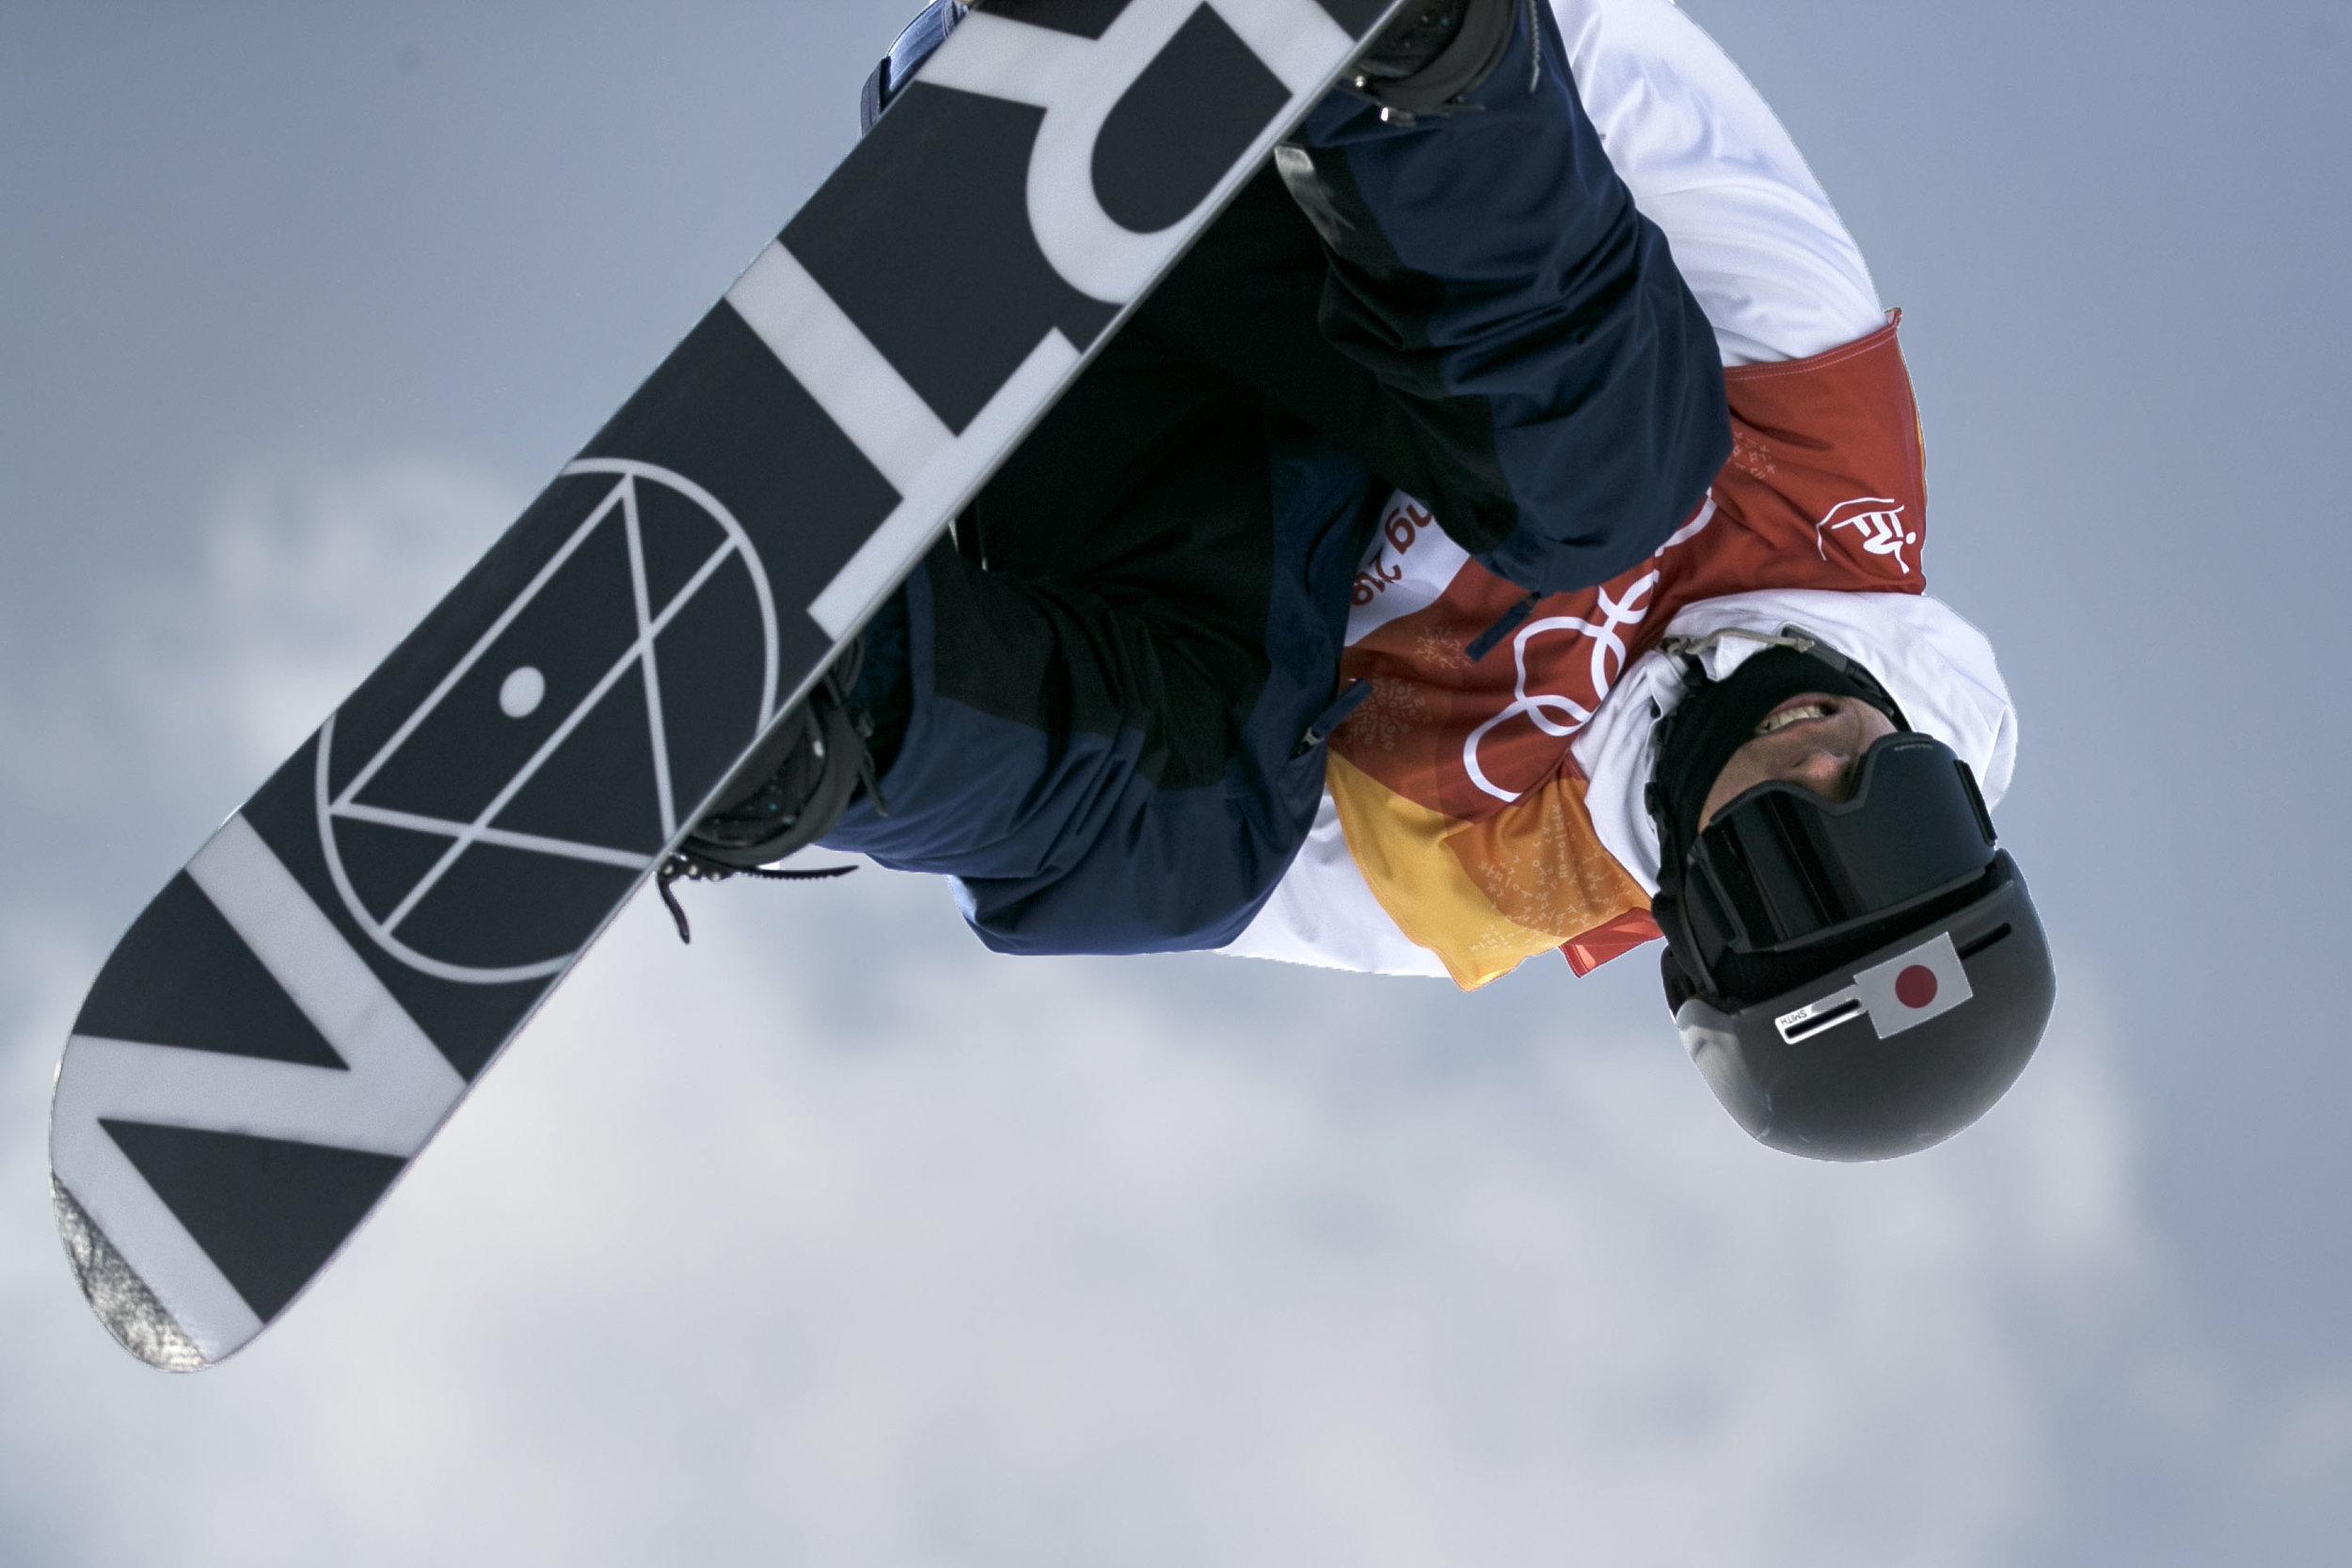 First round of men's halfpipe snowboarding took place this afternoon, Feb. 13, at Phoenix Snow Park. Only 12 riders moved on to finals and standing in first place is Shaun White with a 98.50.